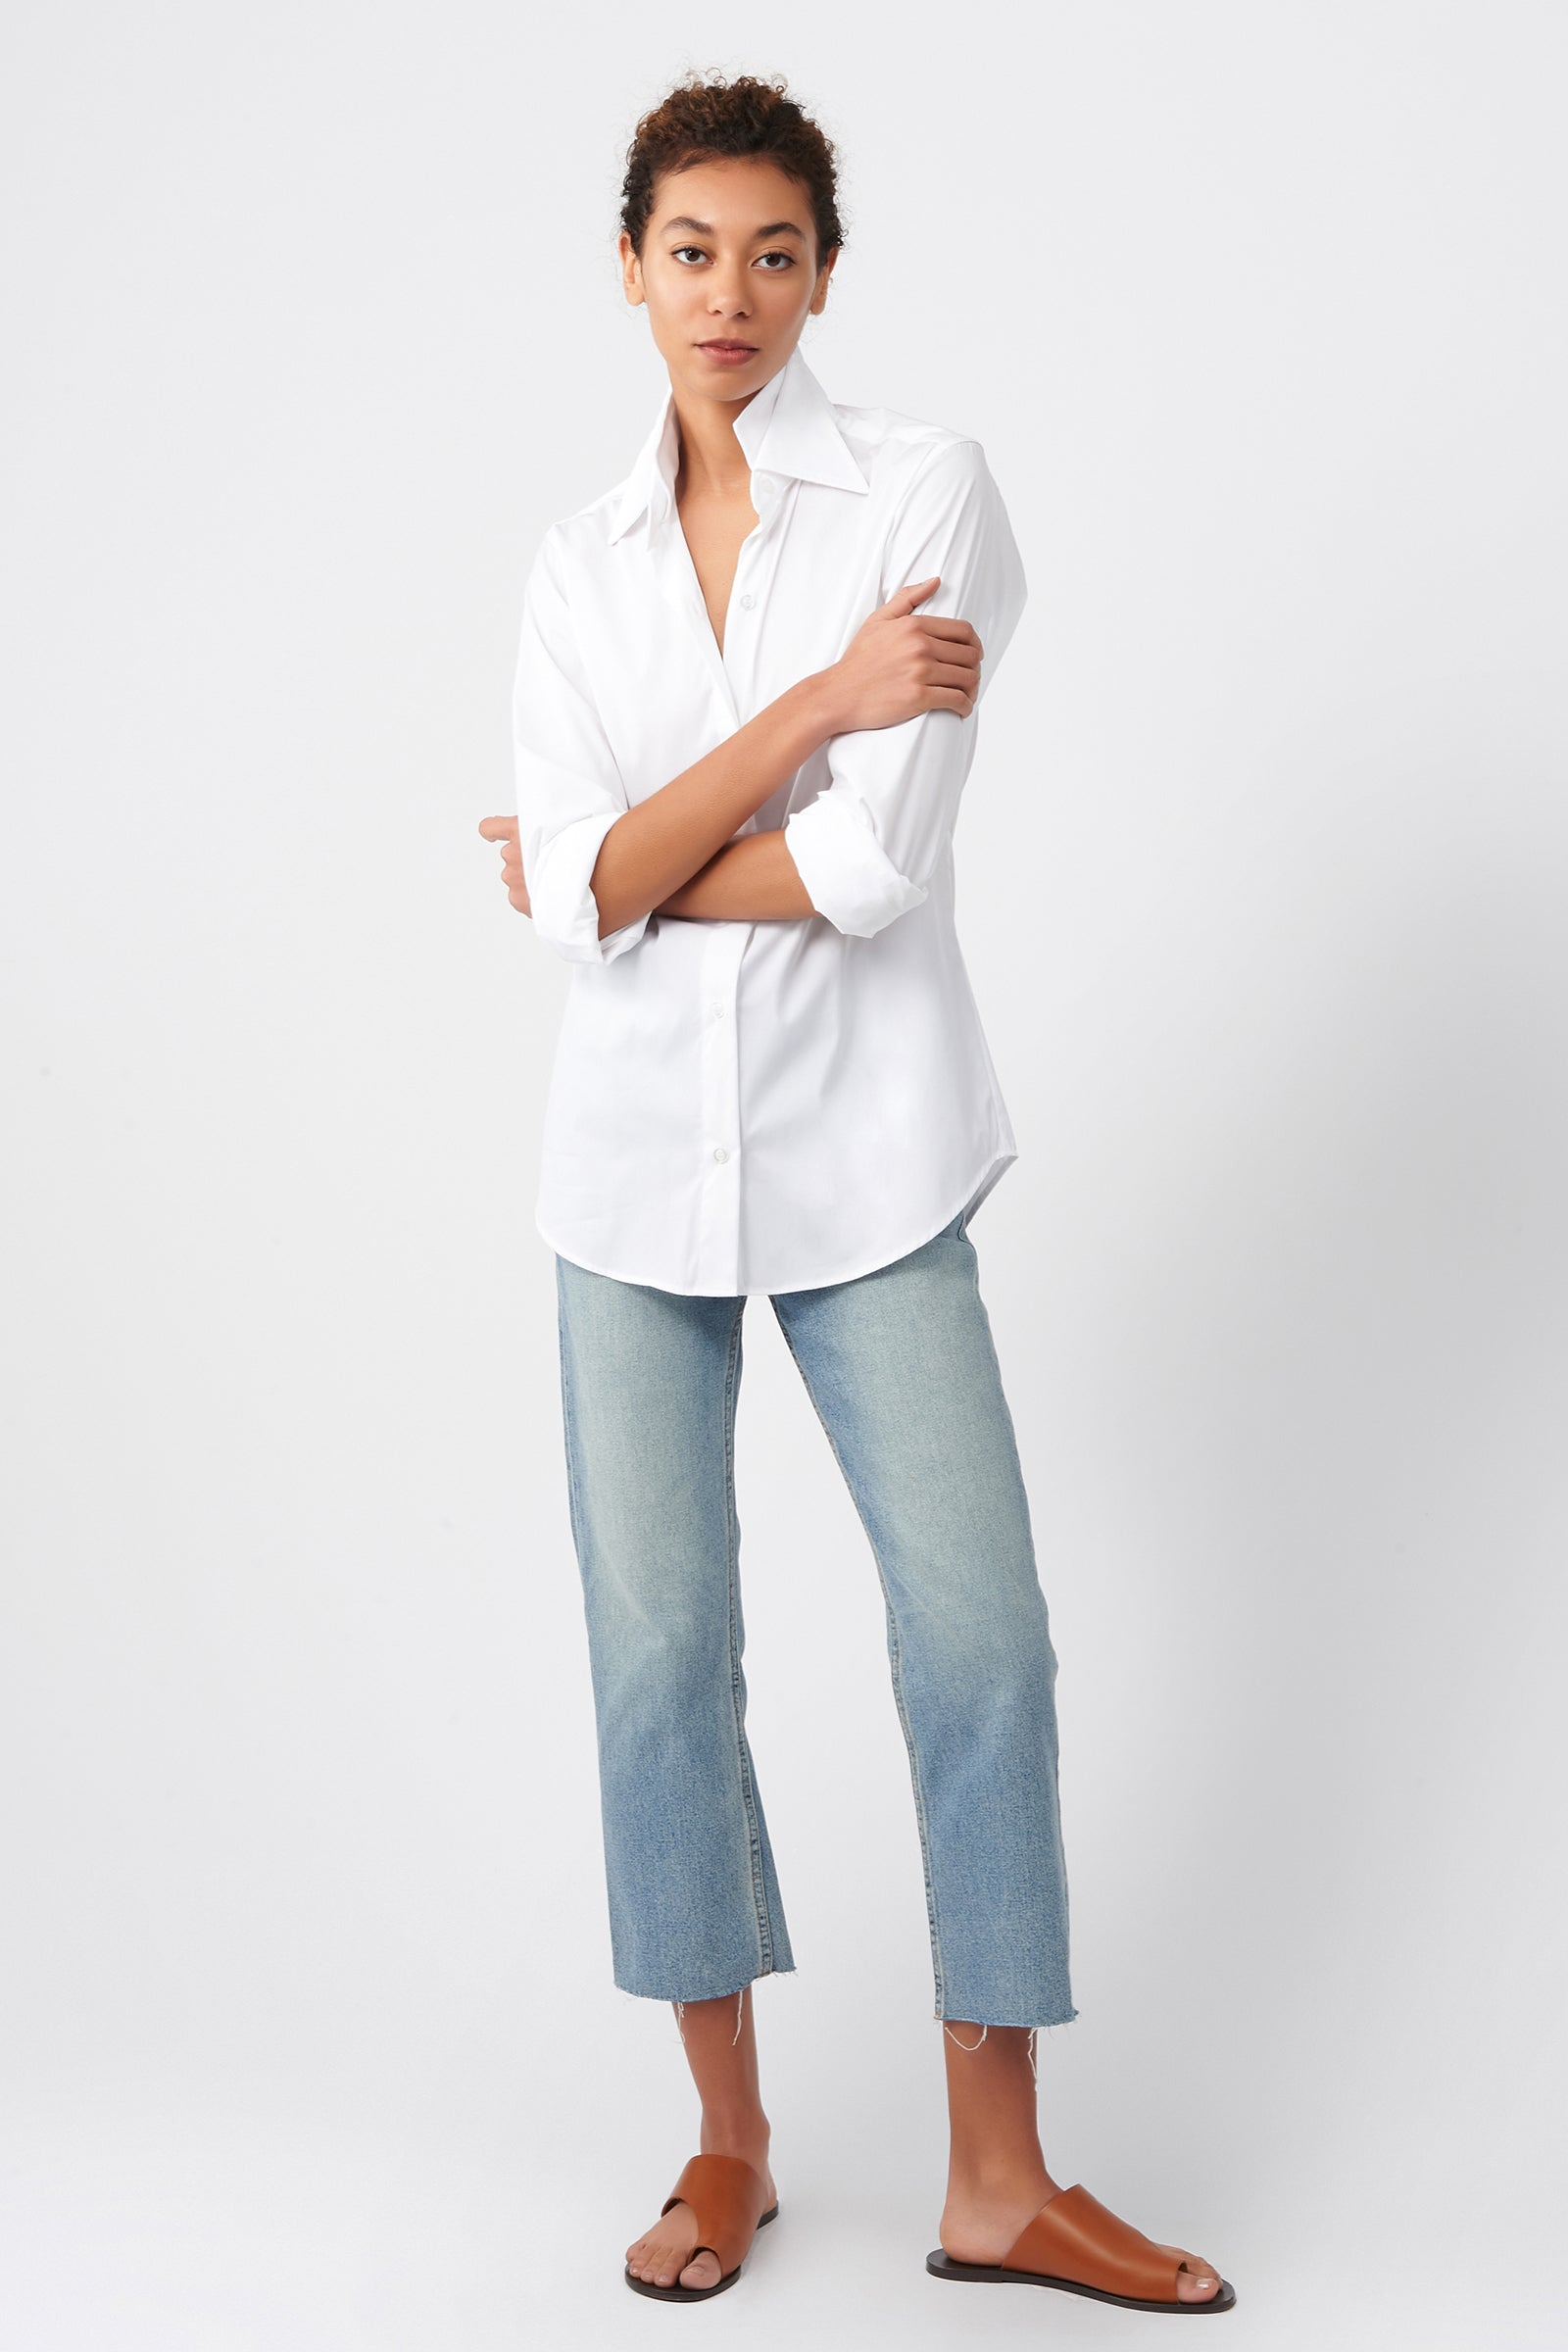 Kal Rieman Double Collar Shirt in White Cotton on Model Full Front Alternate View